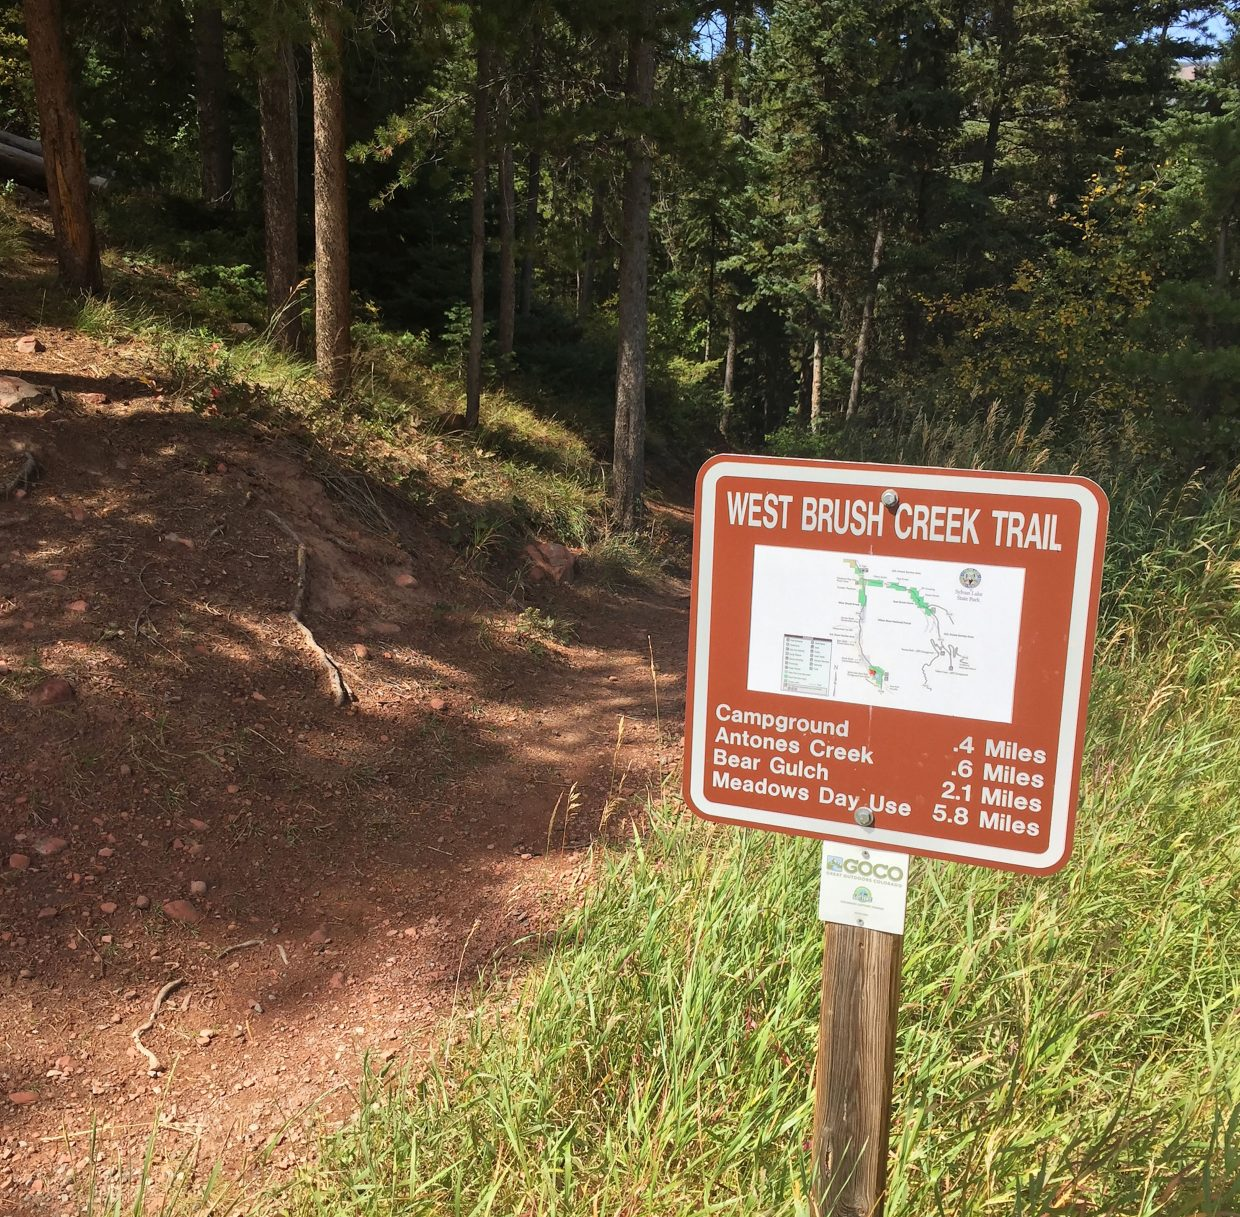 The West Brush Creek Trail leading from the Sylvan Lake Campground to the Meadows Day Use area is a popular destination for hikers.